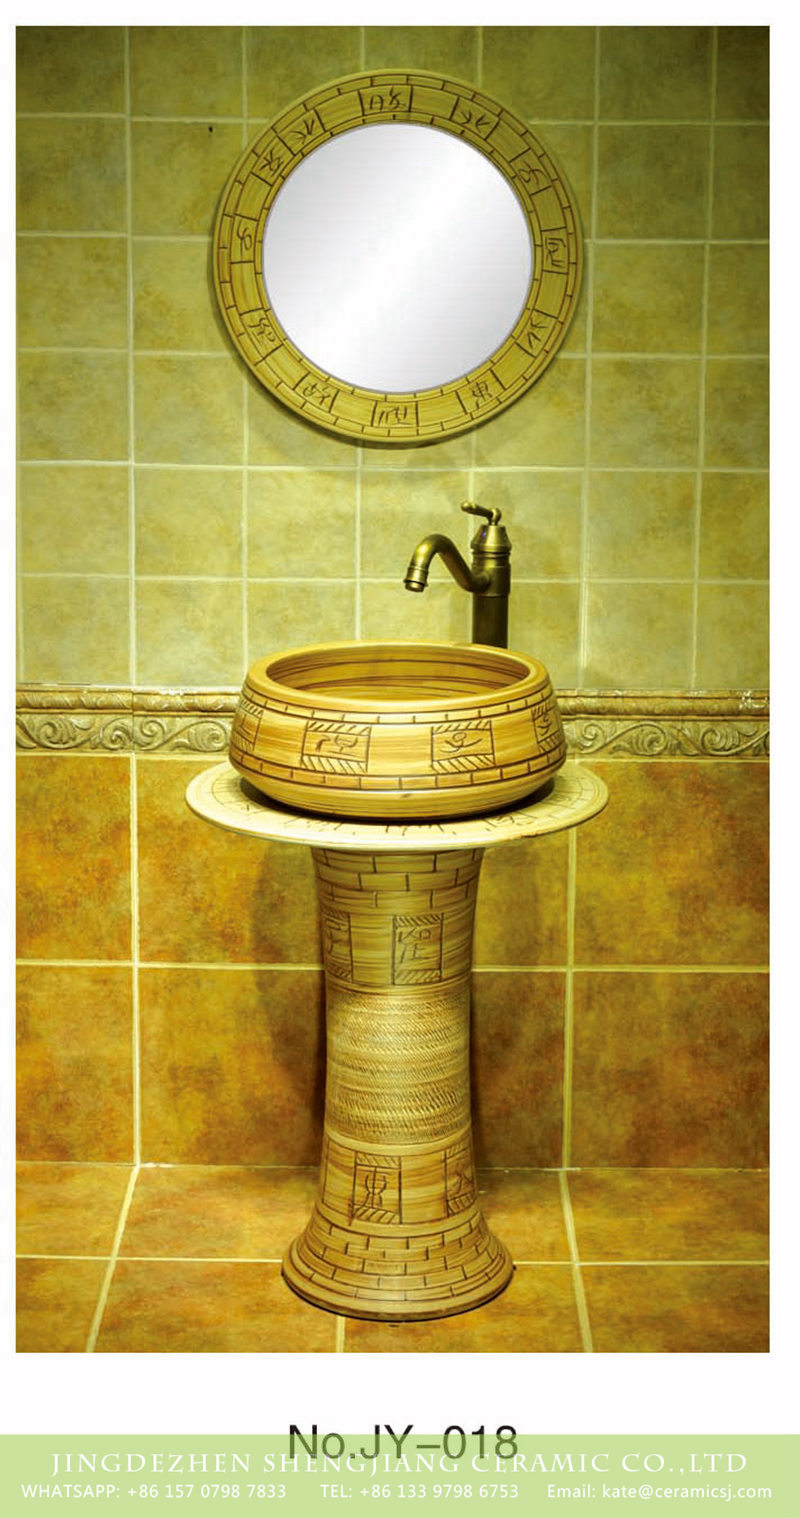 SJJY-018-68立柱盆_04 China traditional style ceramic wood color with special pattern pedestal basin - shengjiang  ceramic  factory   porcelain art hand basin wash sink